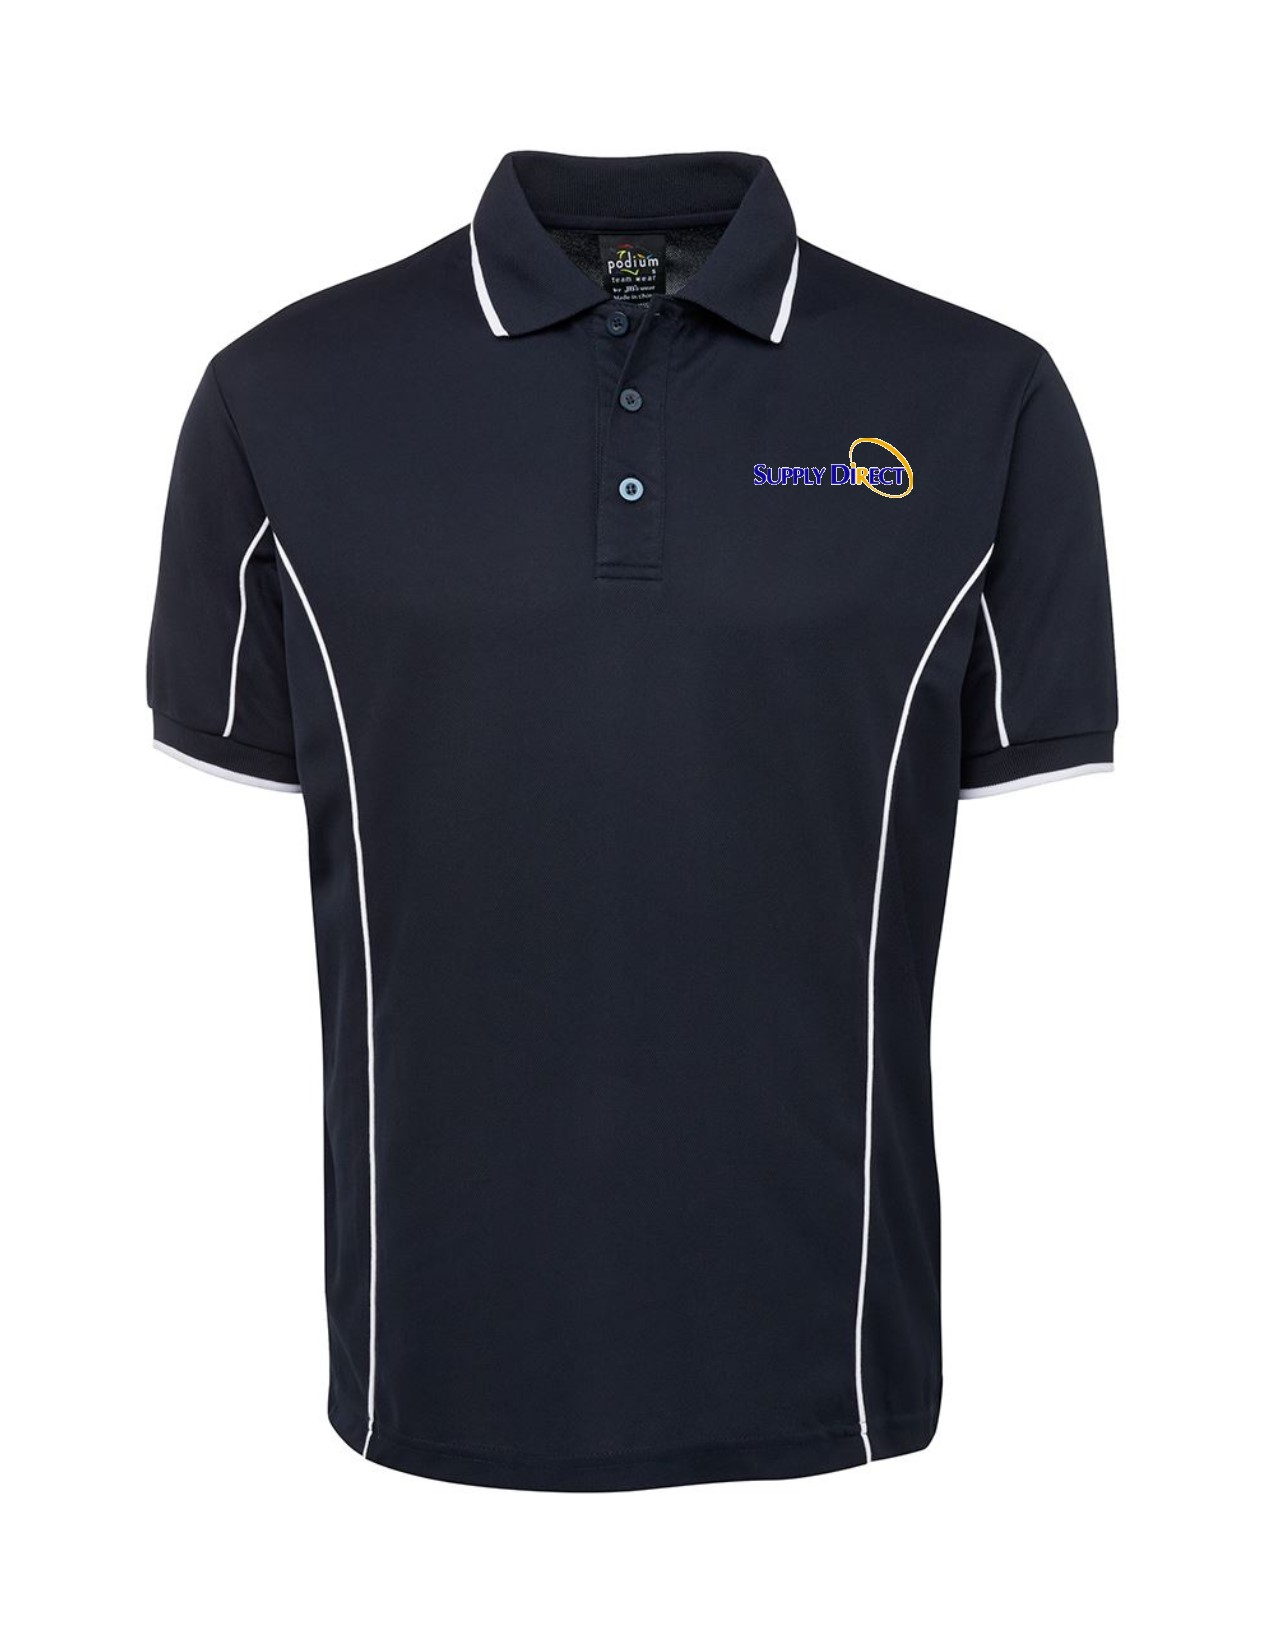 PODIUM POLO NAVY WHITE 2XL - SUPPLY DIRECT LOGO